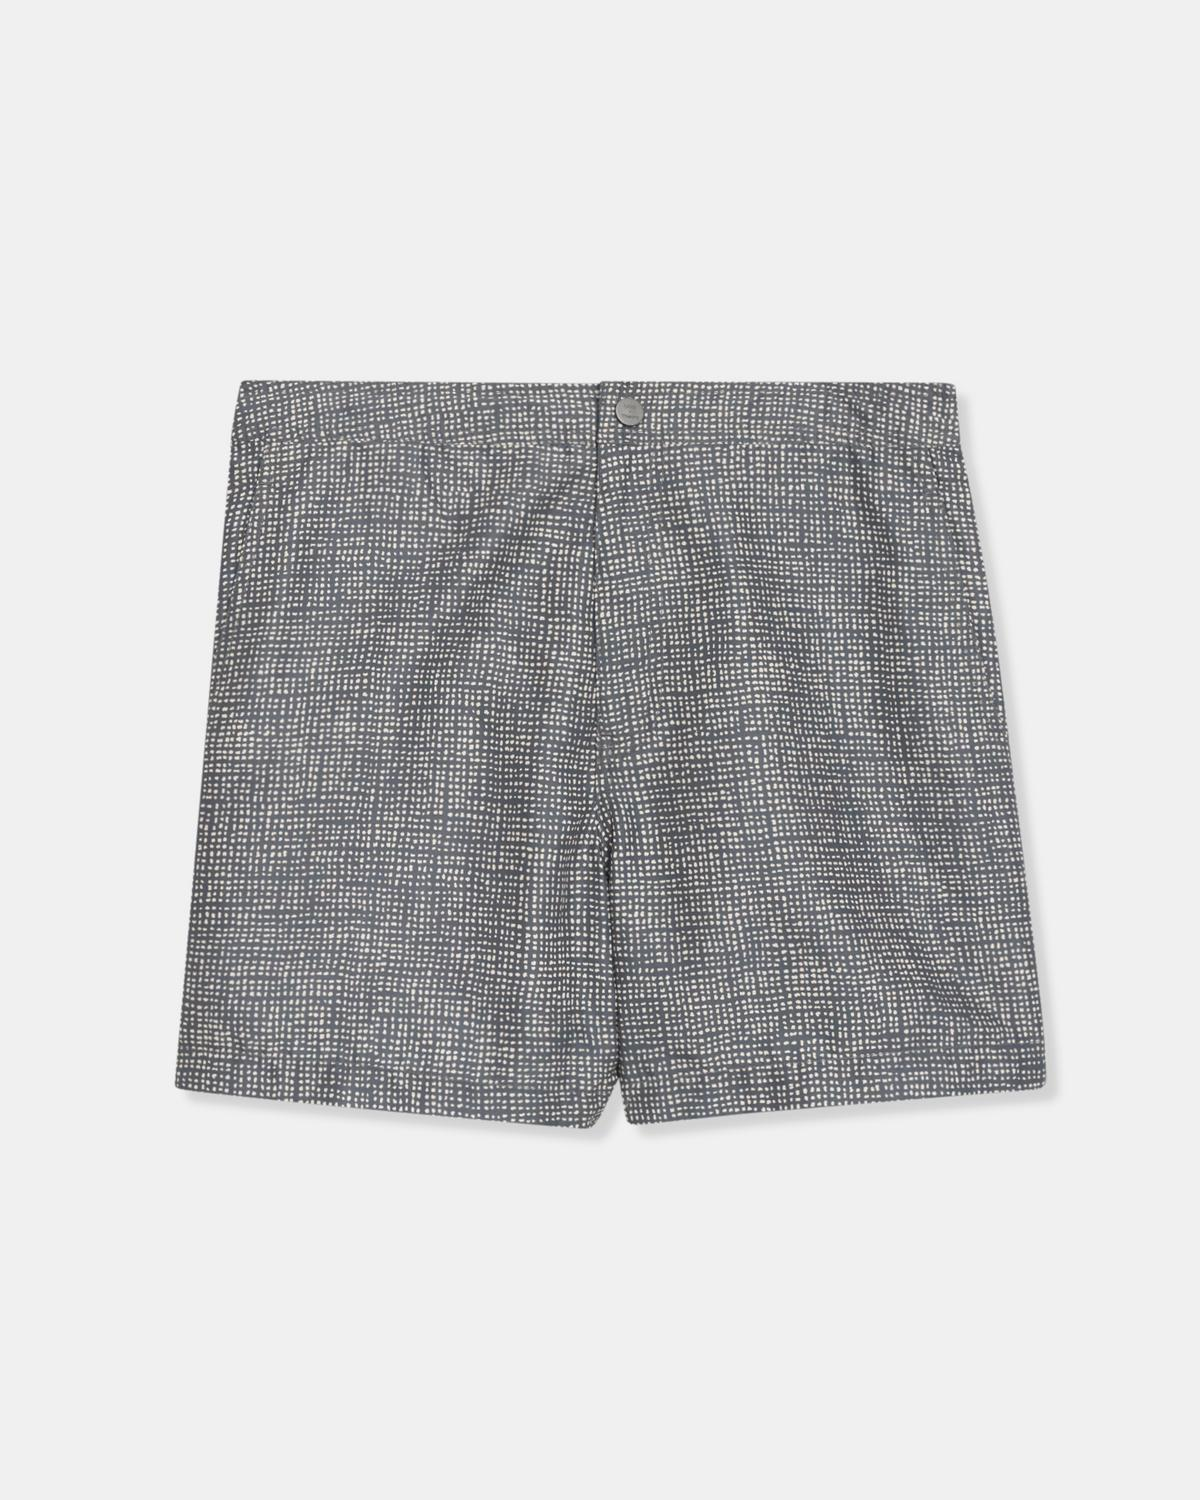 Onia x Theory Calder Swim Trunk